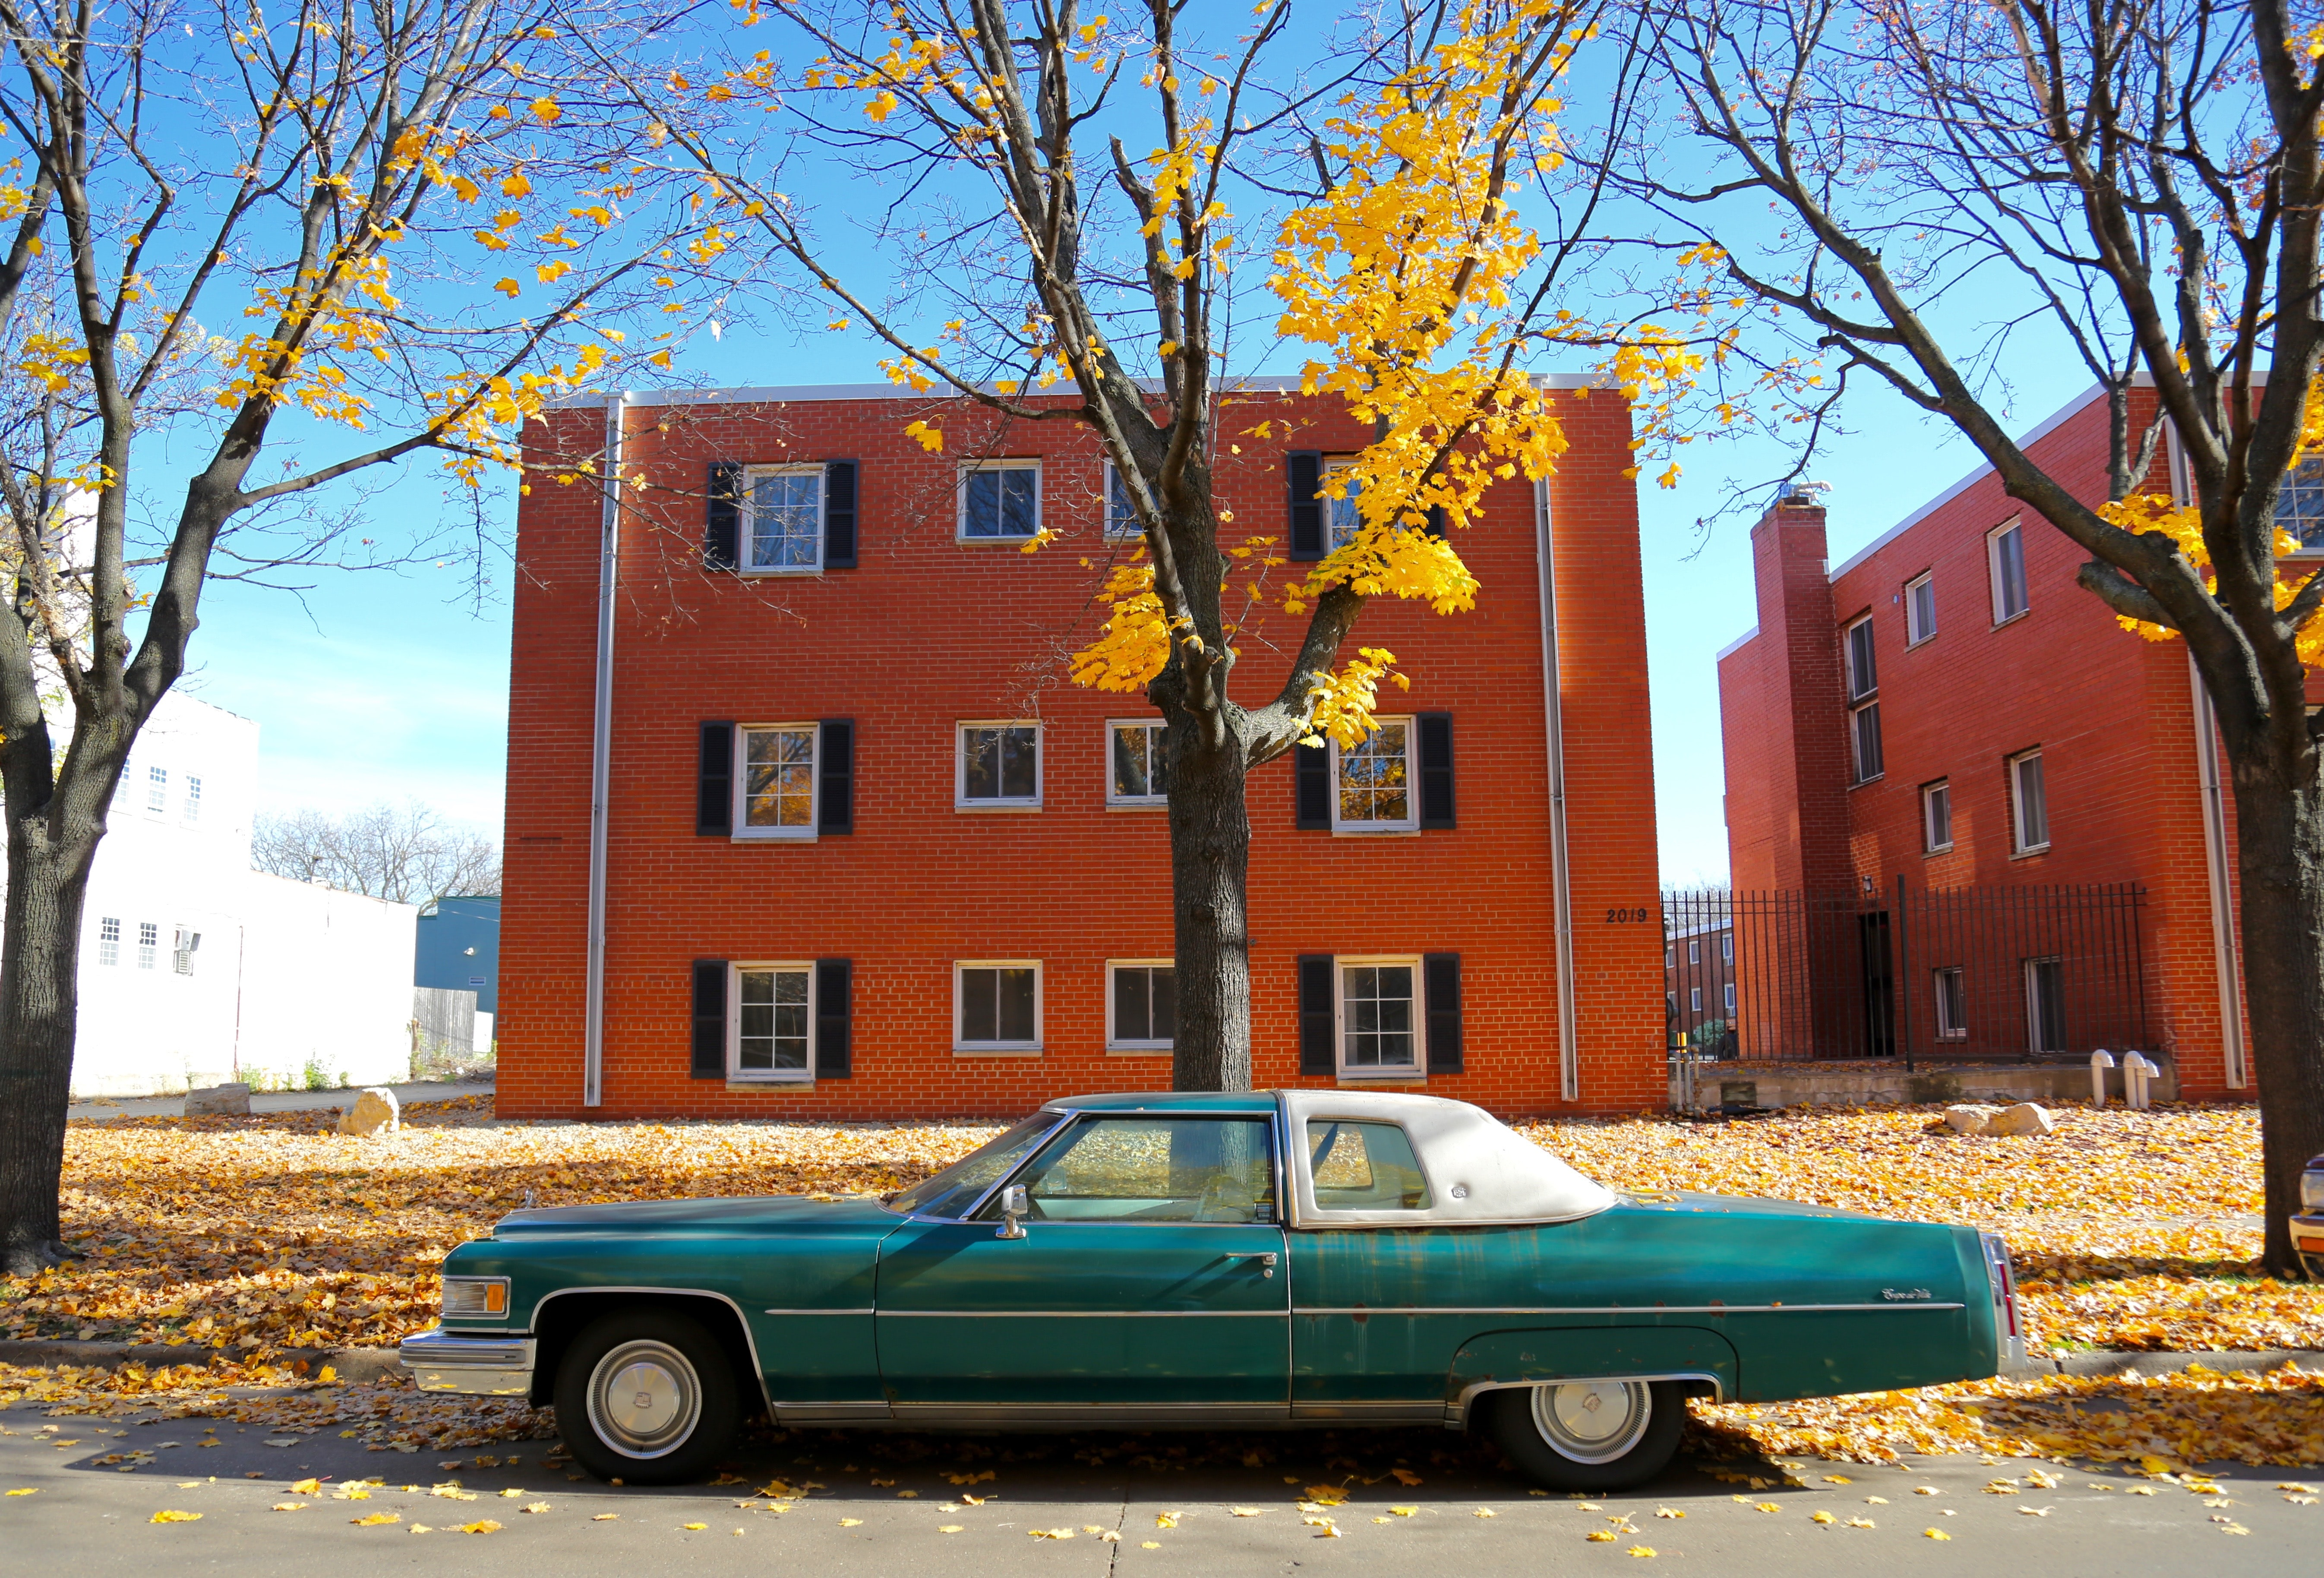 green and white coupe near tree at daytime